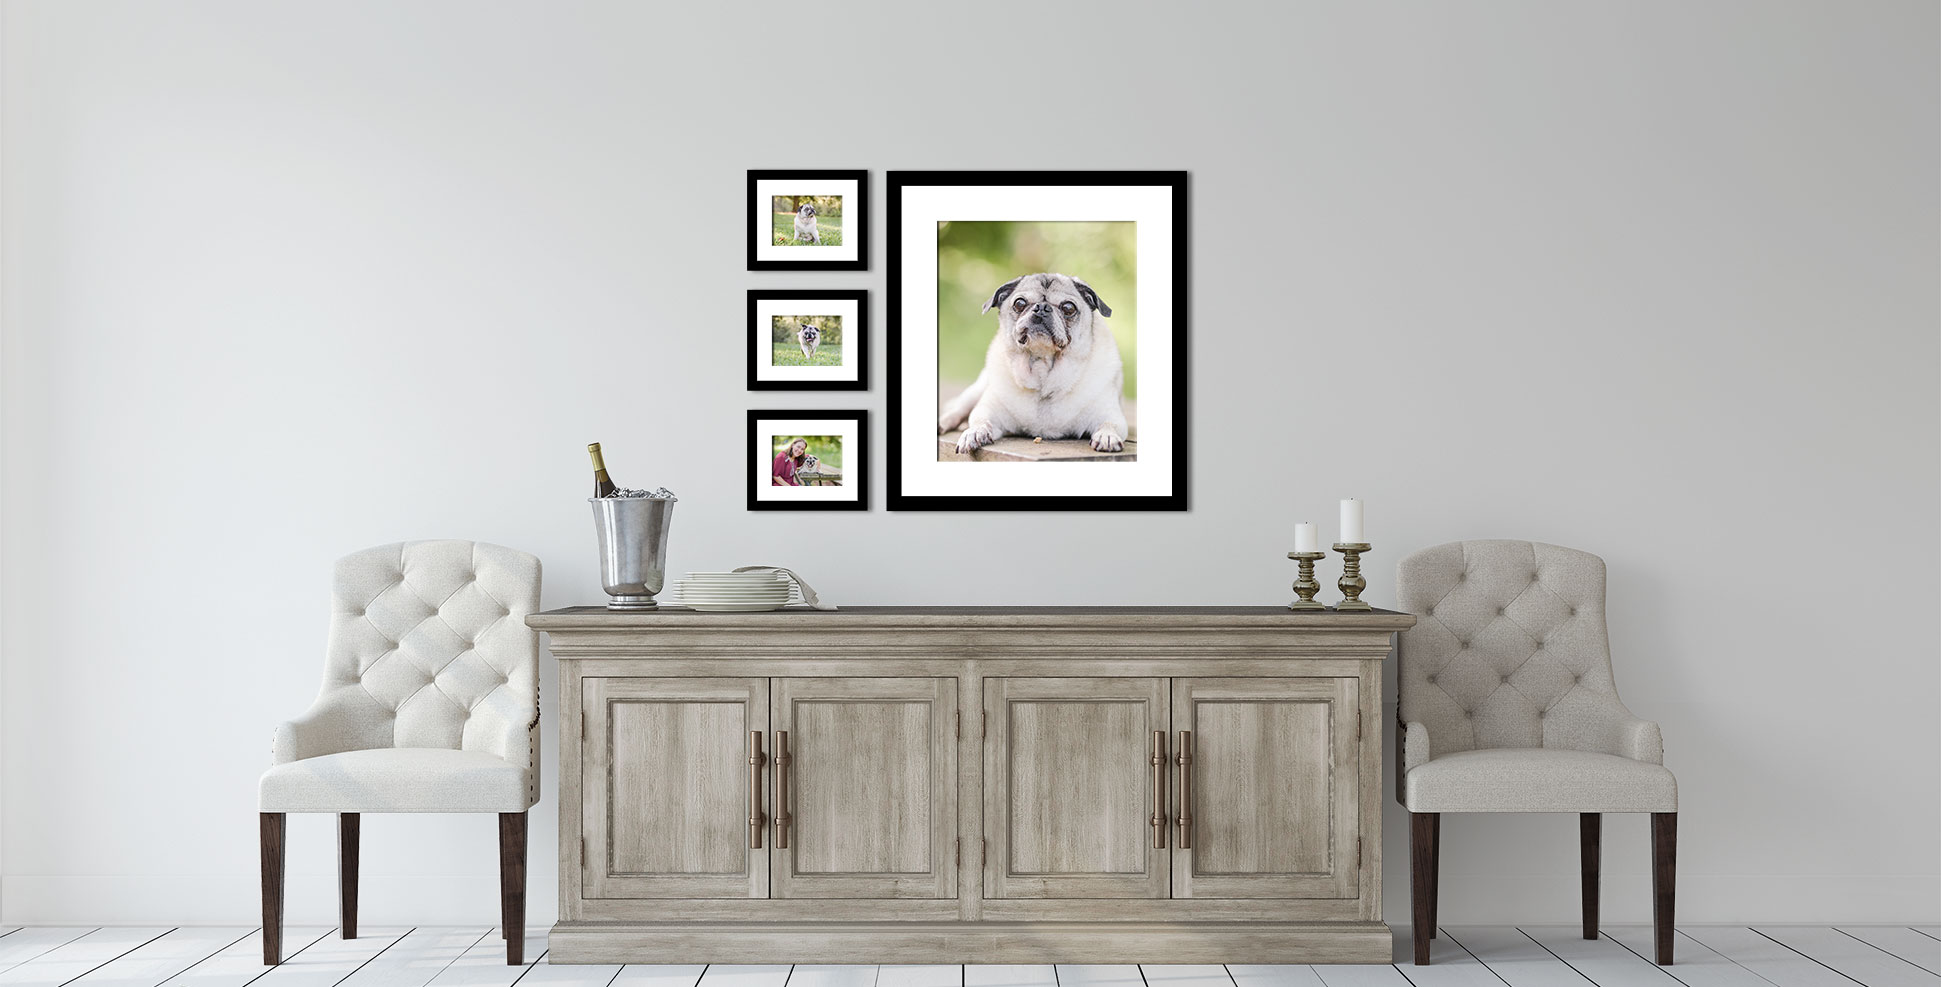 Personalize your home with museum quality framed art from Atlanta pet photographer featuring your own dog.